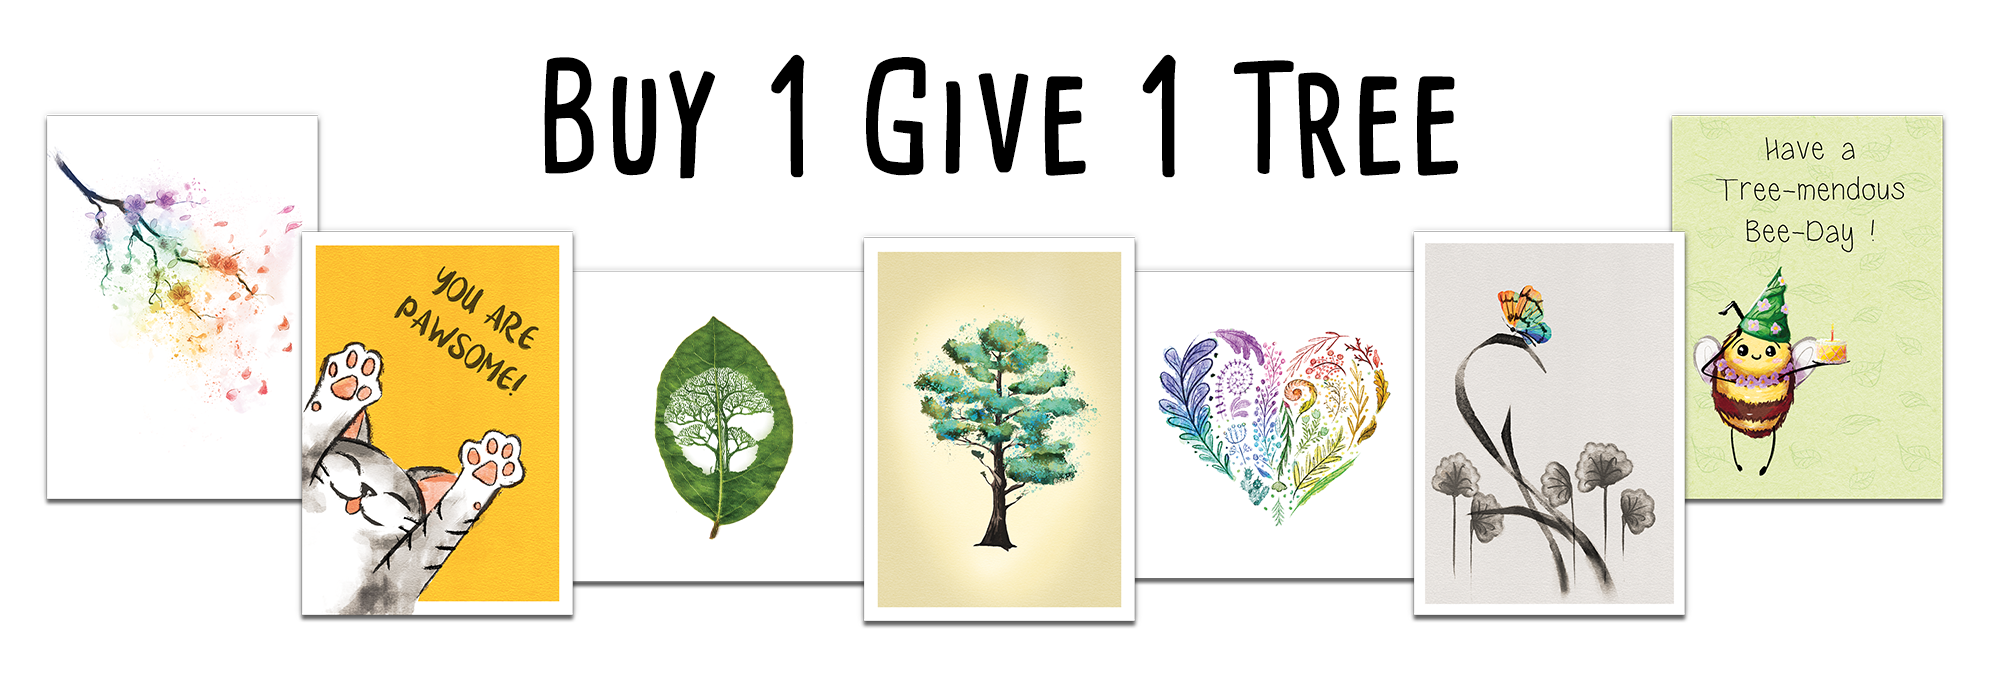 Wholesale greeting cards on a banner. Text above cards says 'Buy 1 Give 1 Tree' to promote eco friendly cards.